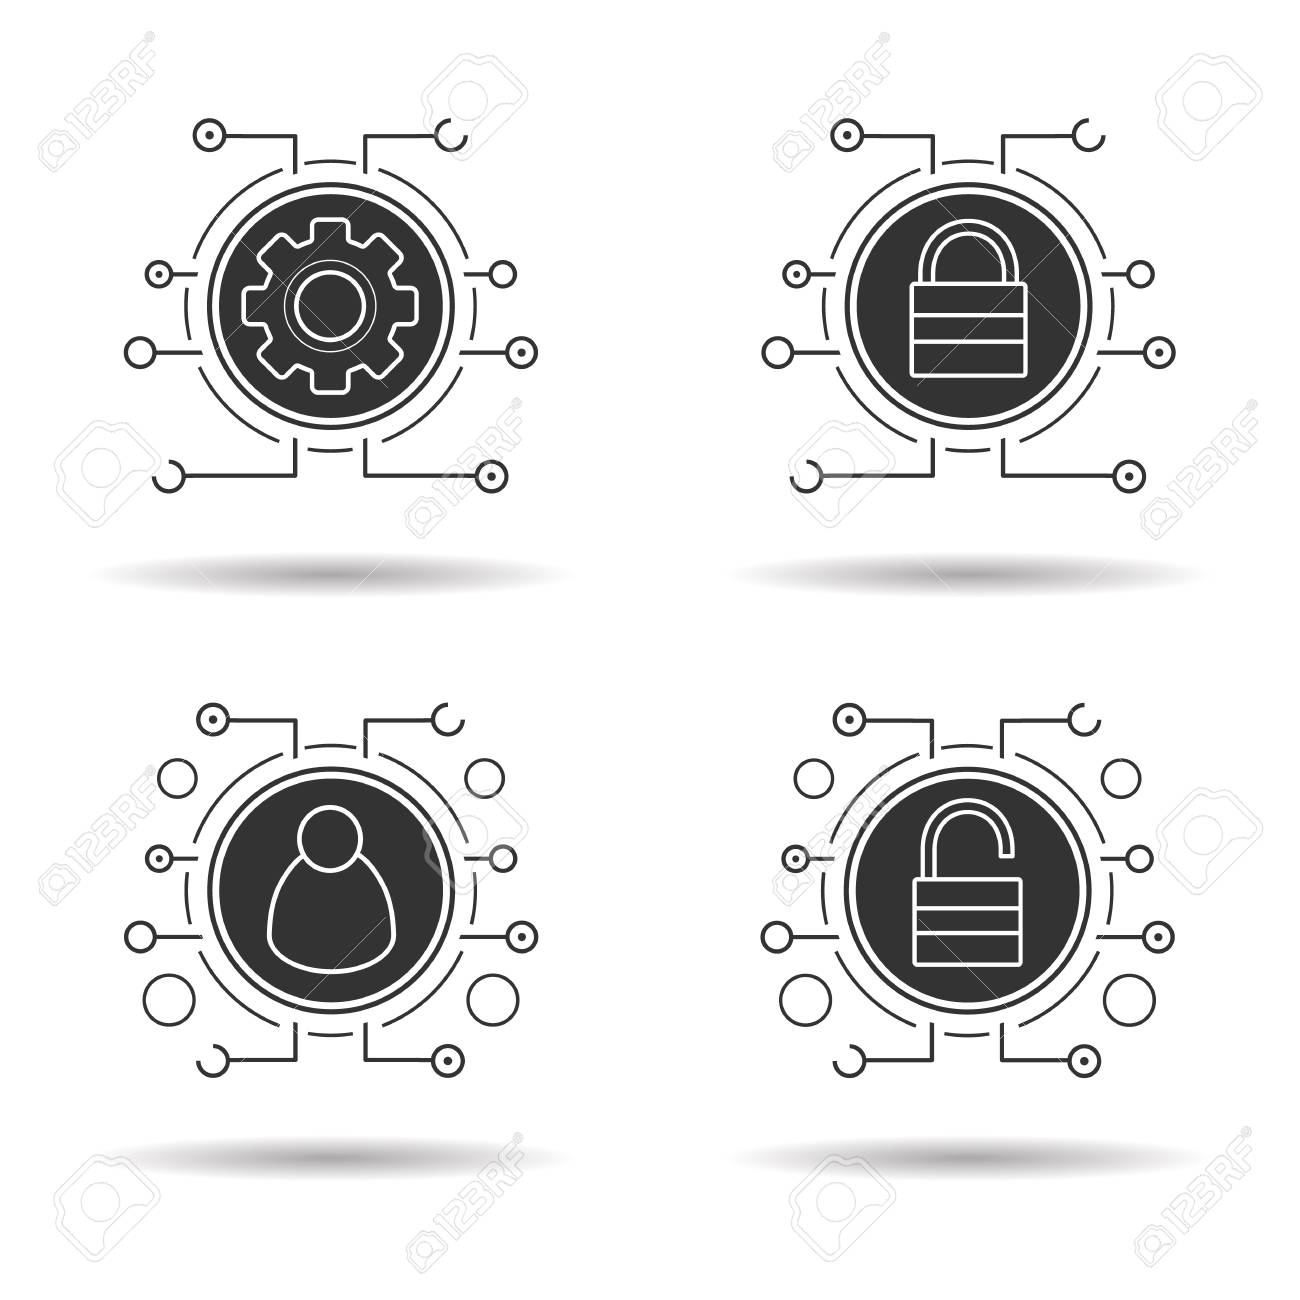 Cyber security icons set  Access denied, network admin and settings,